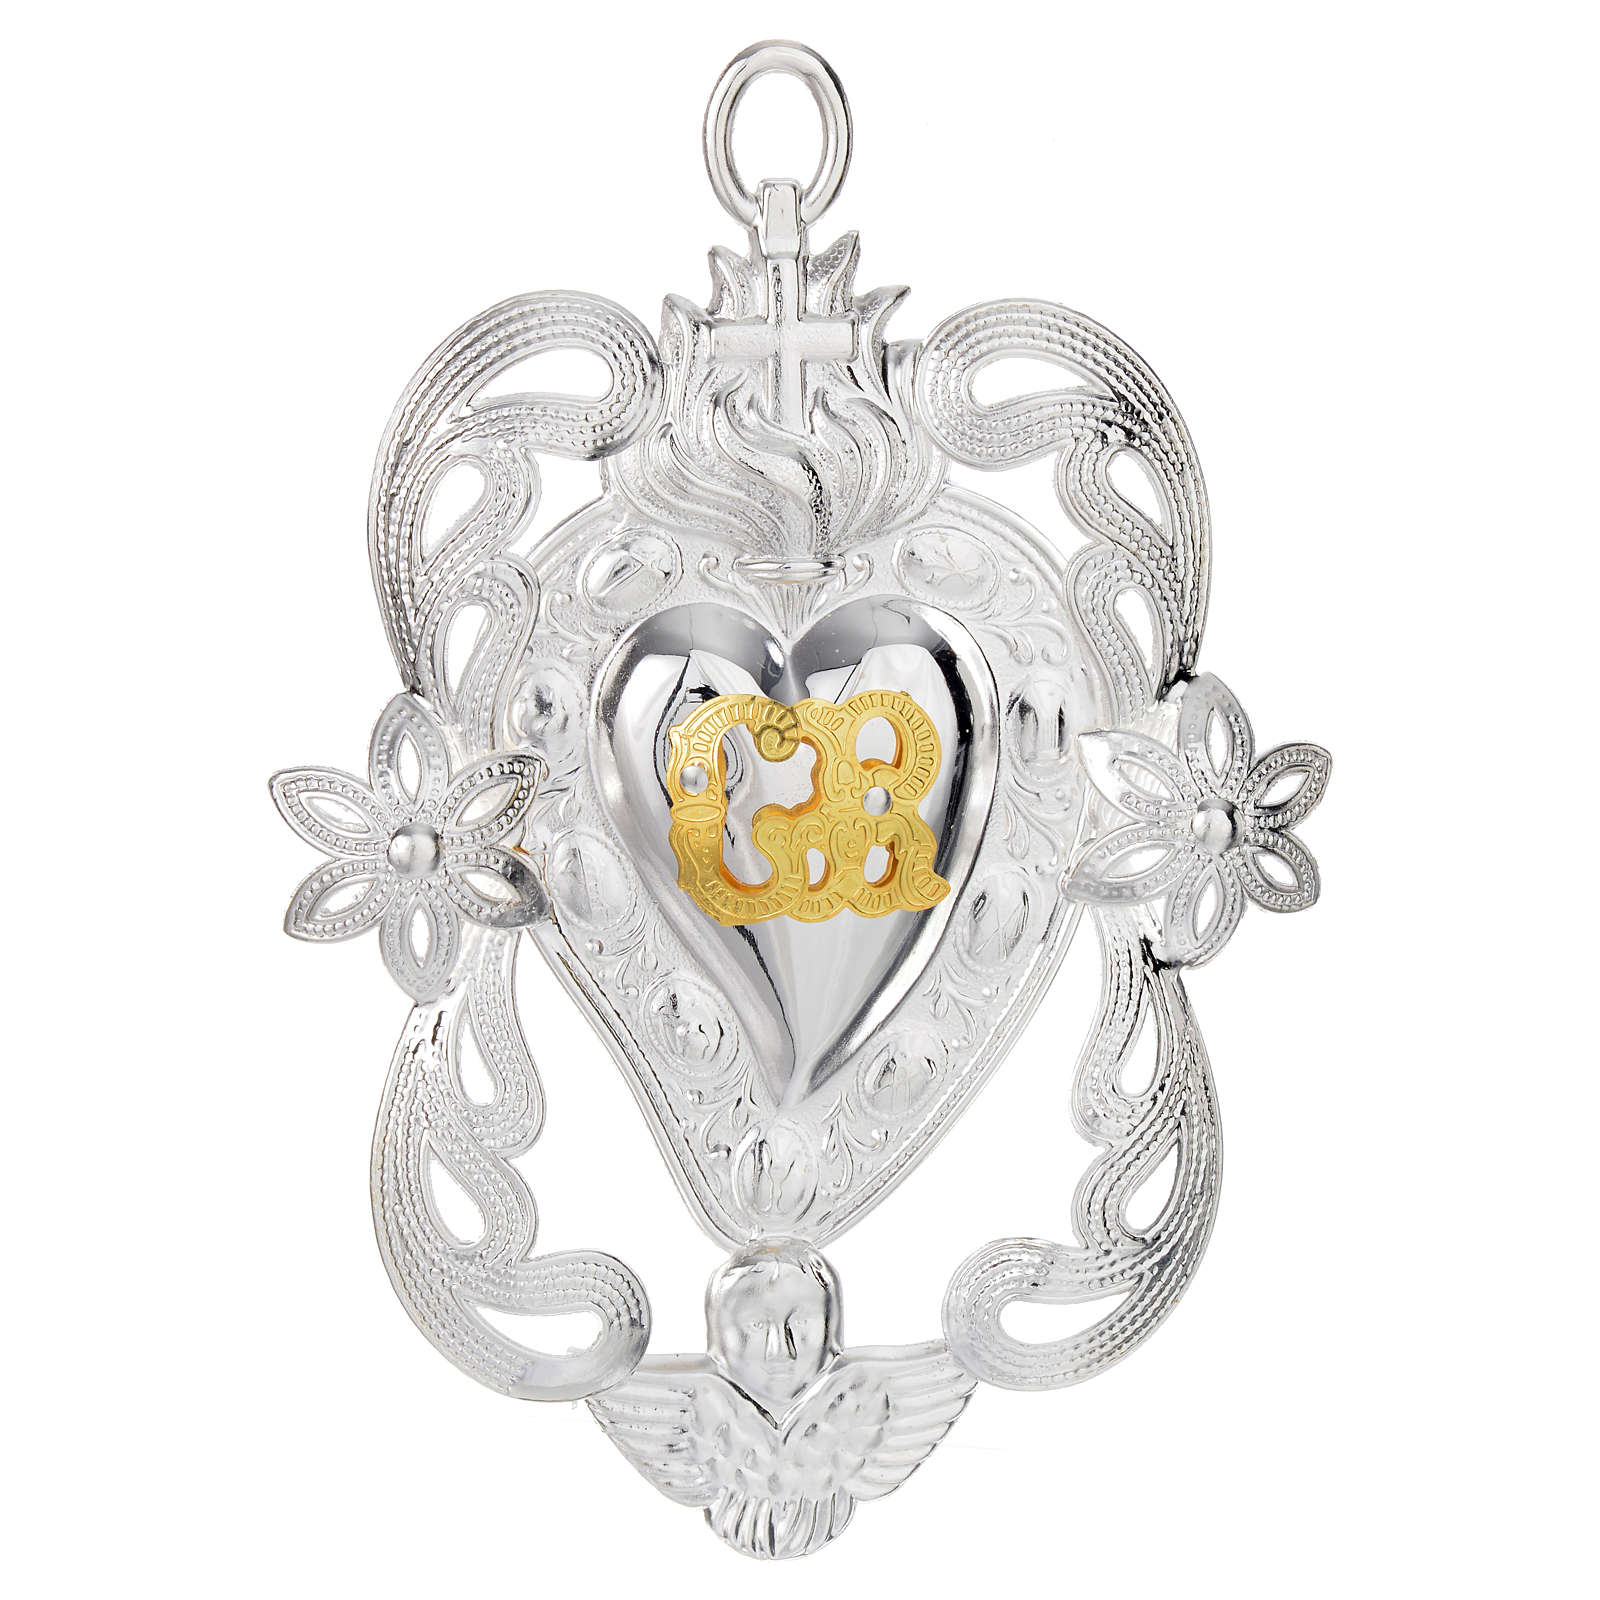 Votive sacred heart with angel and flowers 11x8cm 3